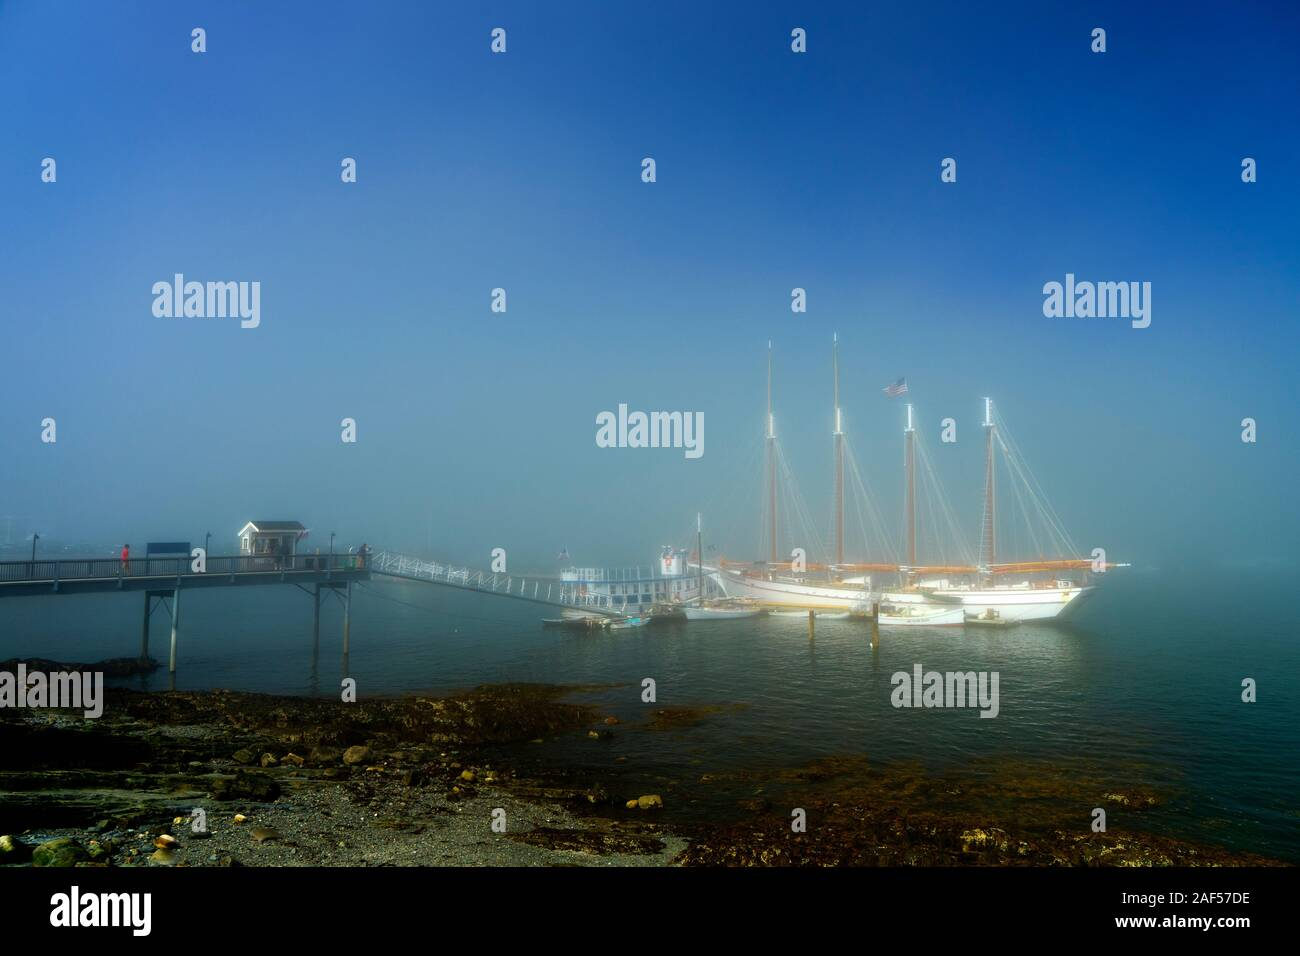 four-masted-schooner-margaret-todd-anchored-in-frenchman-bay-on-a-misty-morning-bar-harbor-maine-usa-2AF57DE.jpg